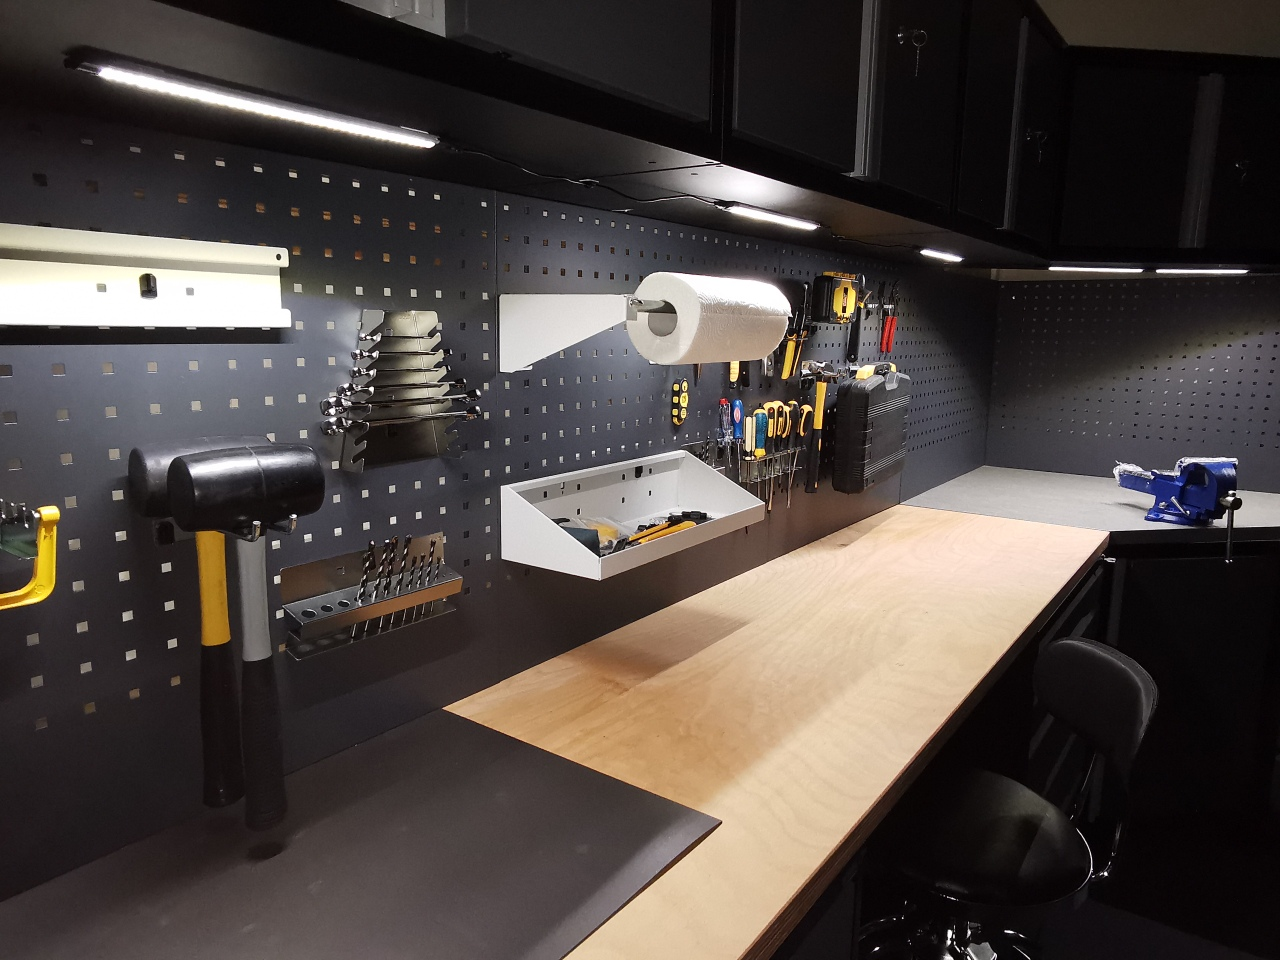 Just a quick snapshot from our office showroom showing what a difference some low cost LED lighting makes to our GaragePride evoline® cabinets.